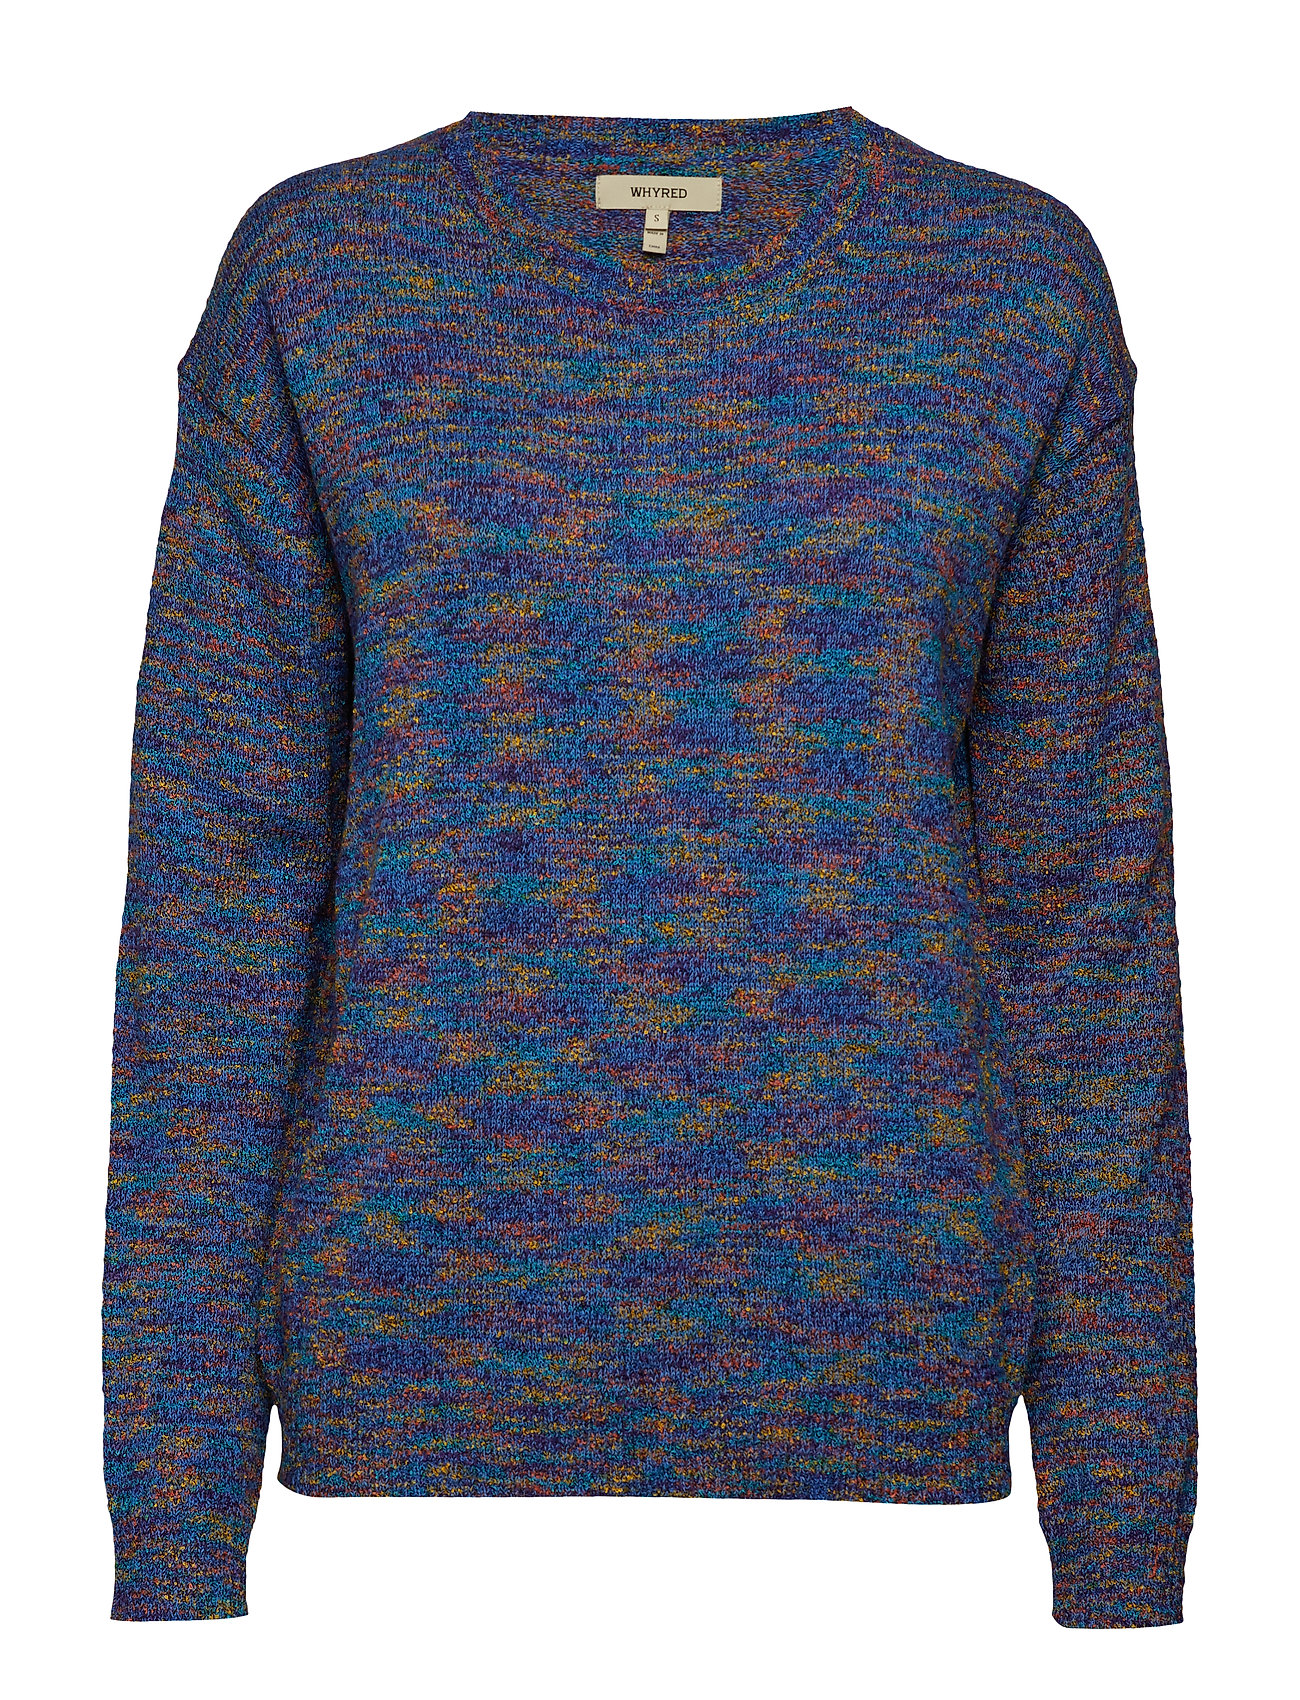 Whyred CECIL SPACE DYE - MULTICOLOR